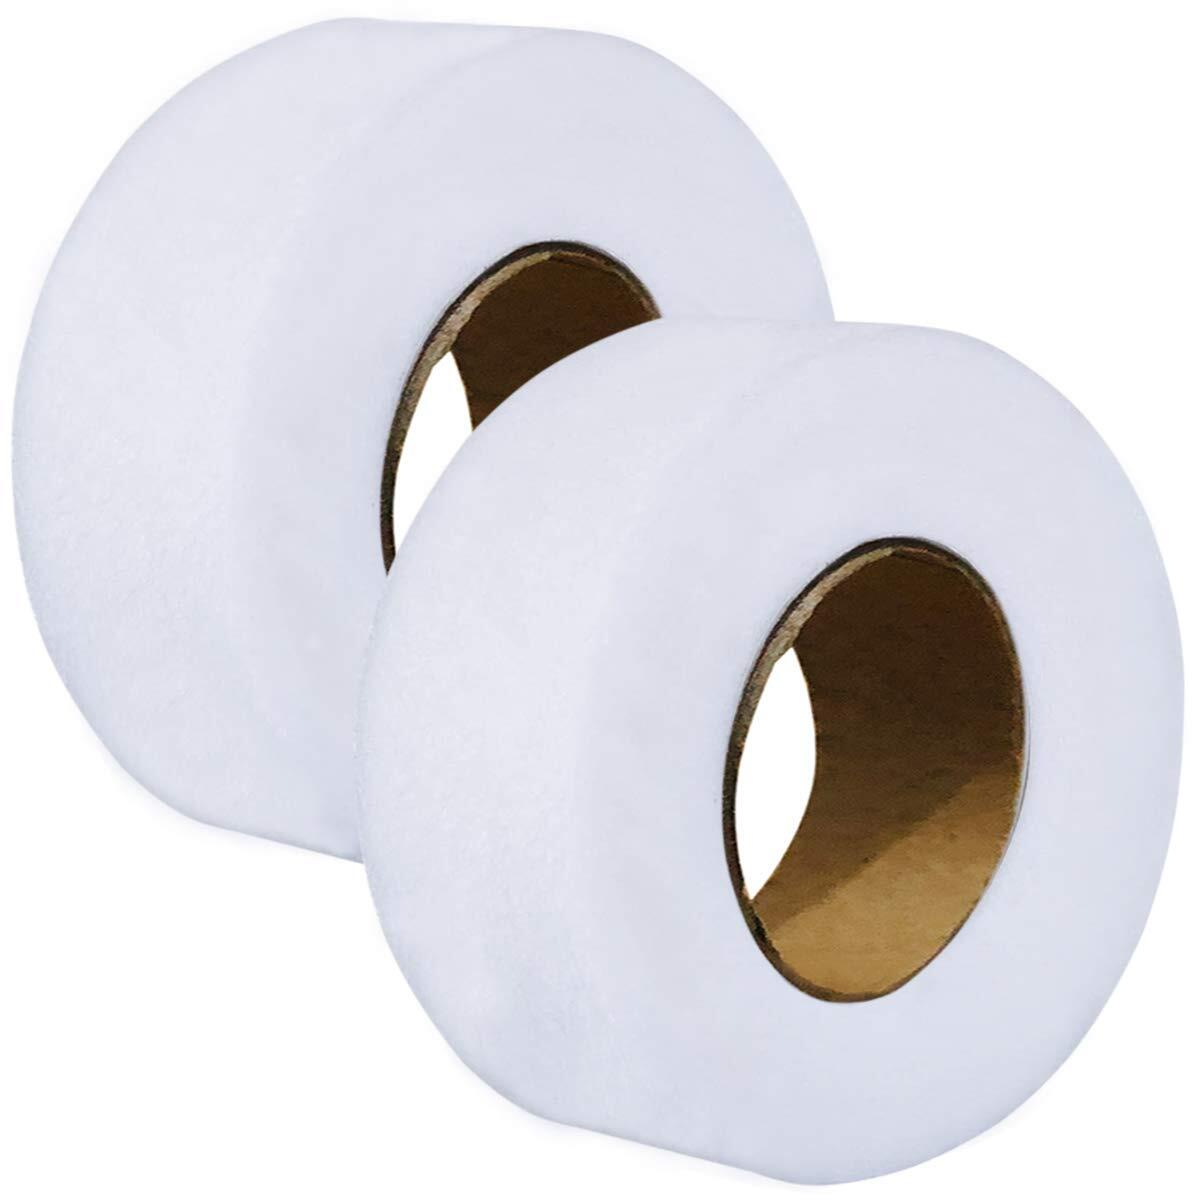 2pcs Hem Tape Iron-On Adhesive Fabric Fusing Tape Each 27 Yards Length, 1 inch/2.5cm Width